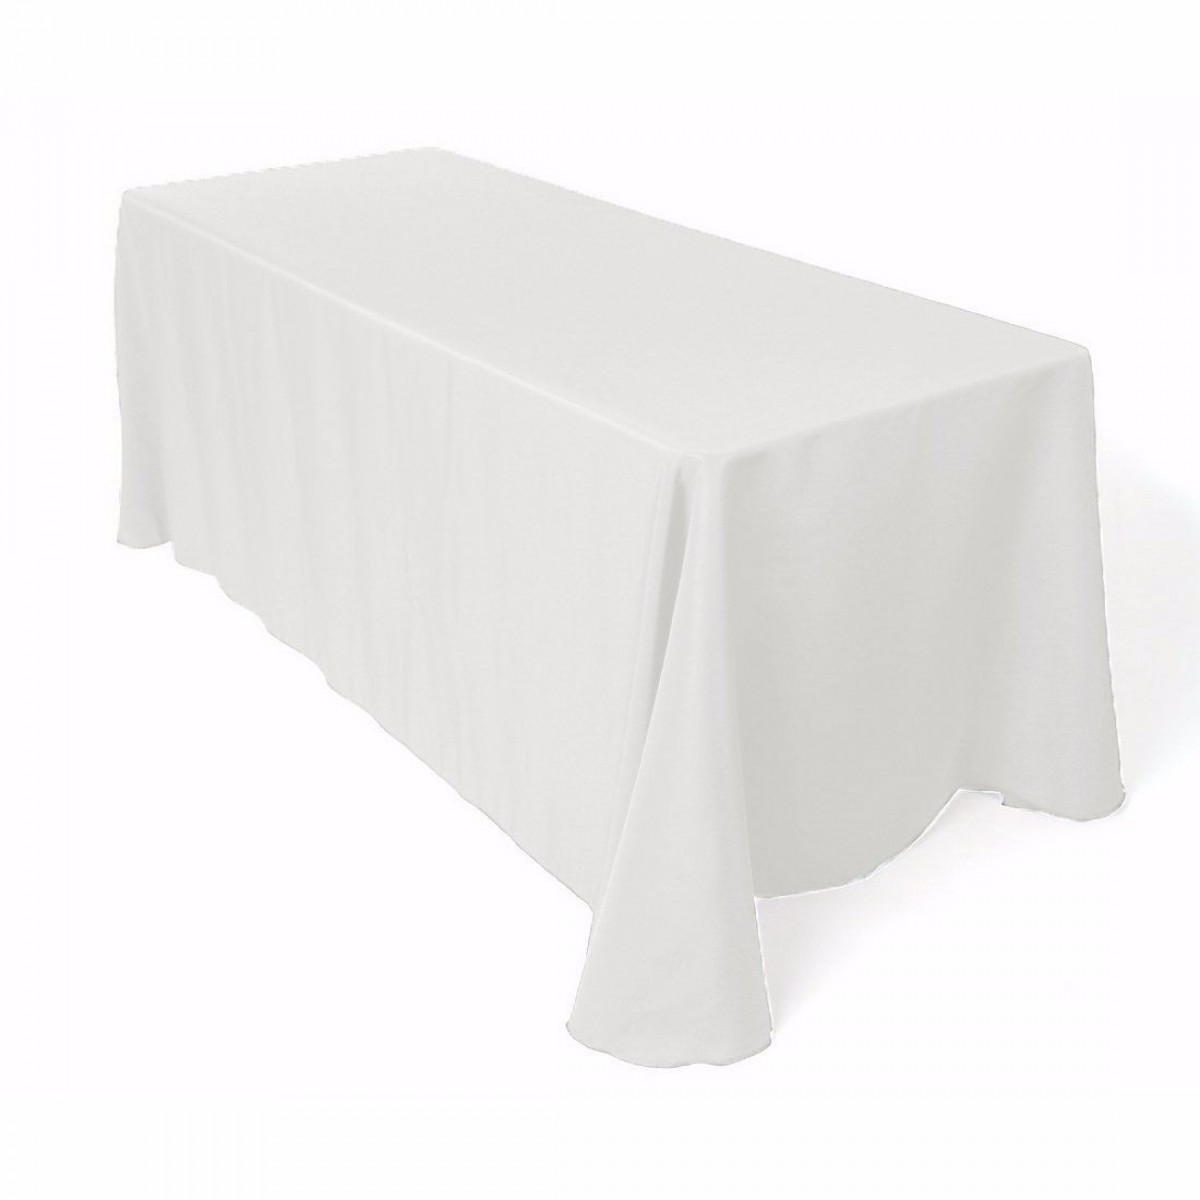 Nappe de table blanche